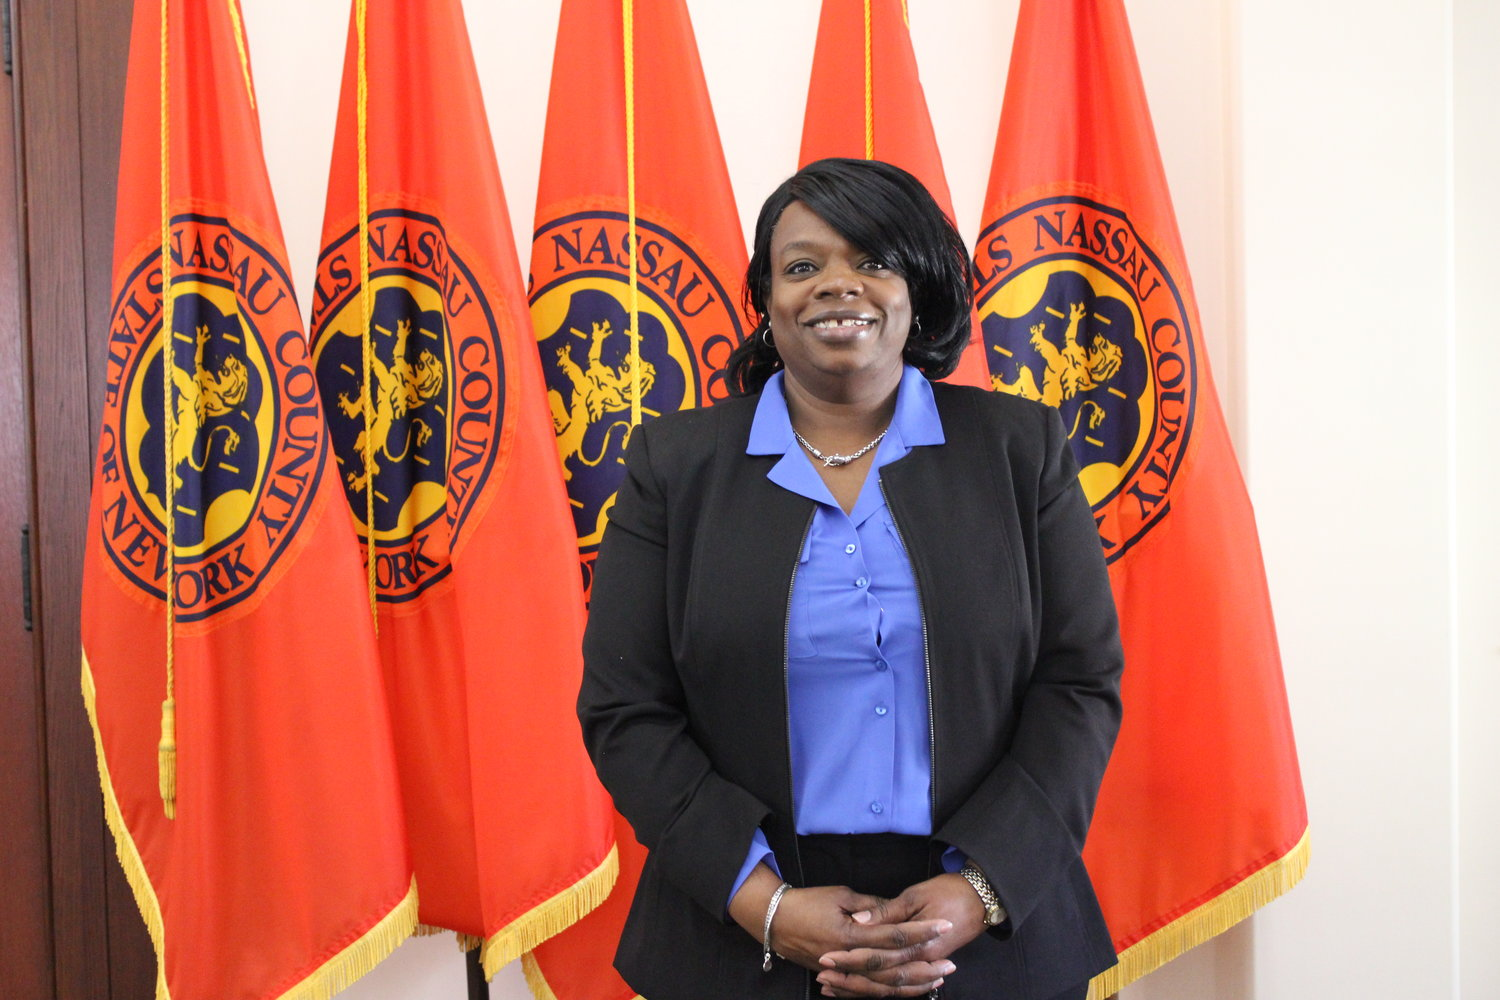 Nassau County Sheriff Vera Fludd will retire at the end of January, and the county is interviewing roughly 10 candidates for the position, according to Christine Geed, a county spokeswoman.